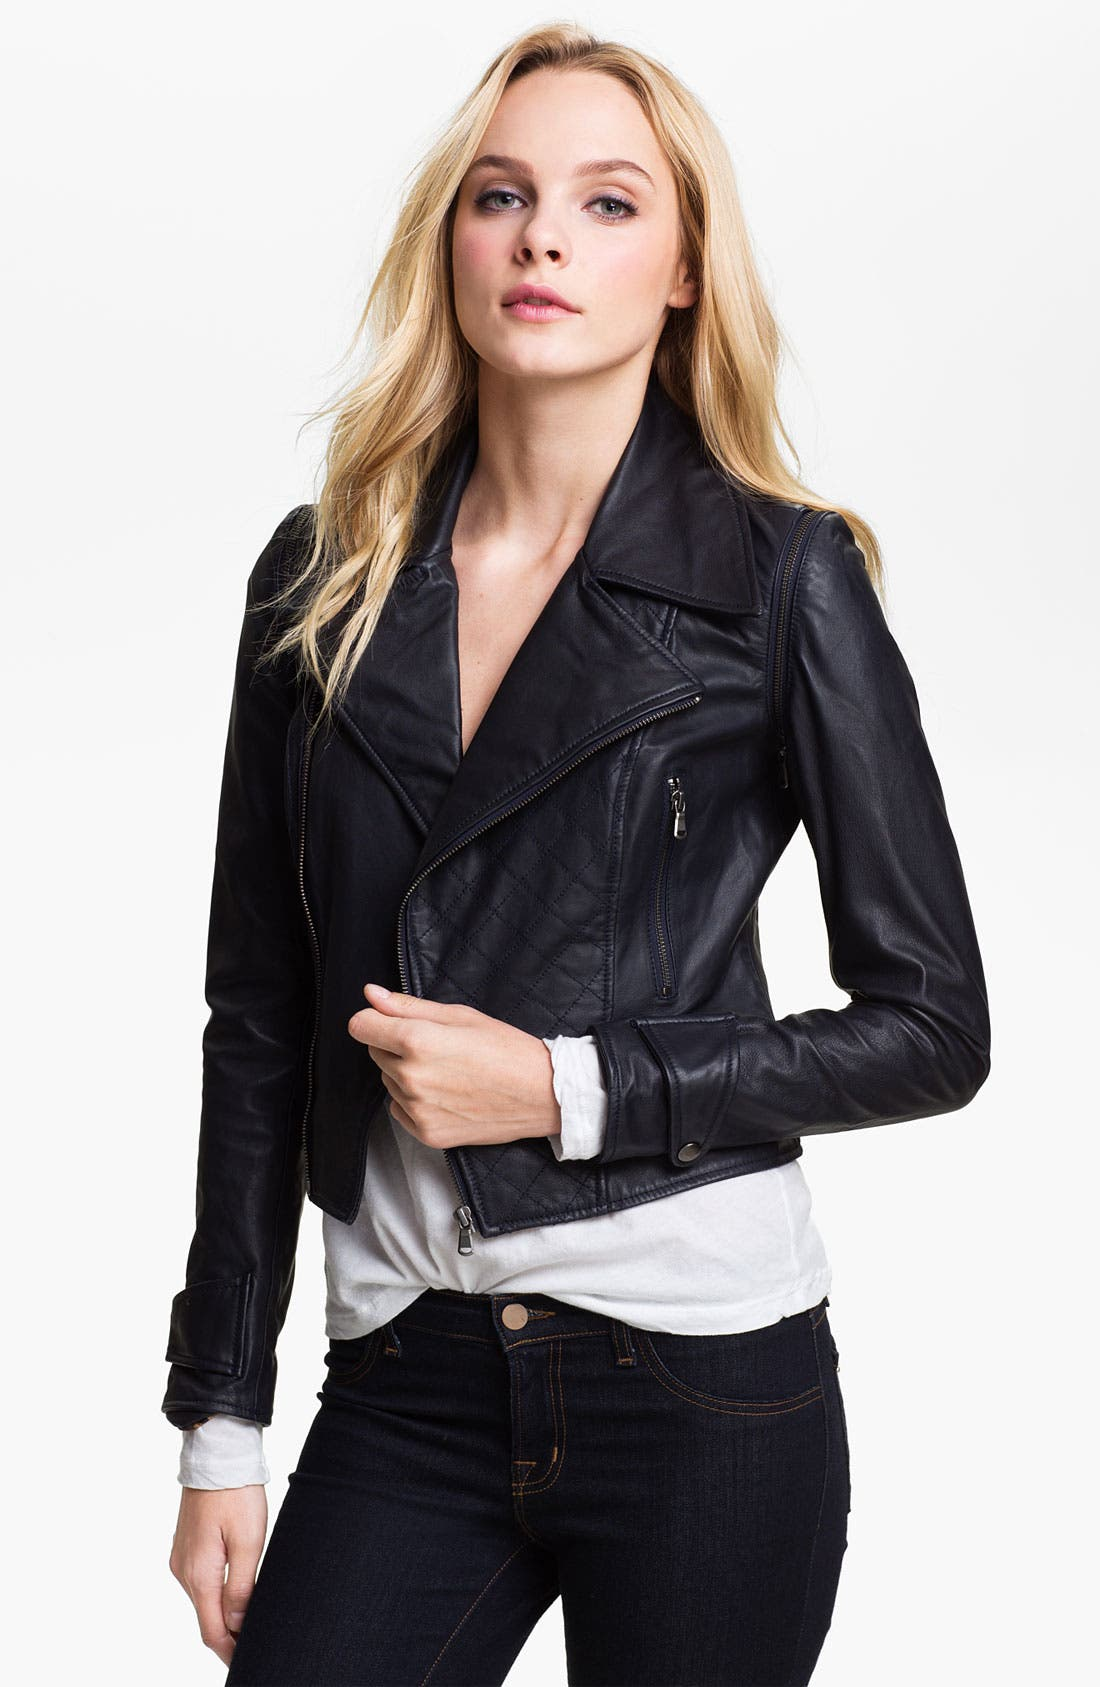 Main Image - Kenna-T Convertible Quilted Leather Biker Jacket